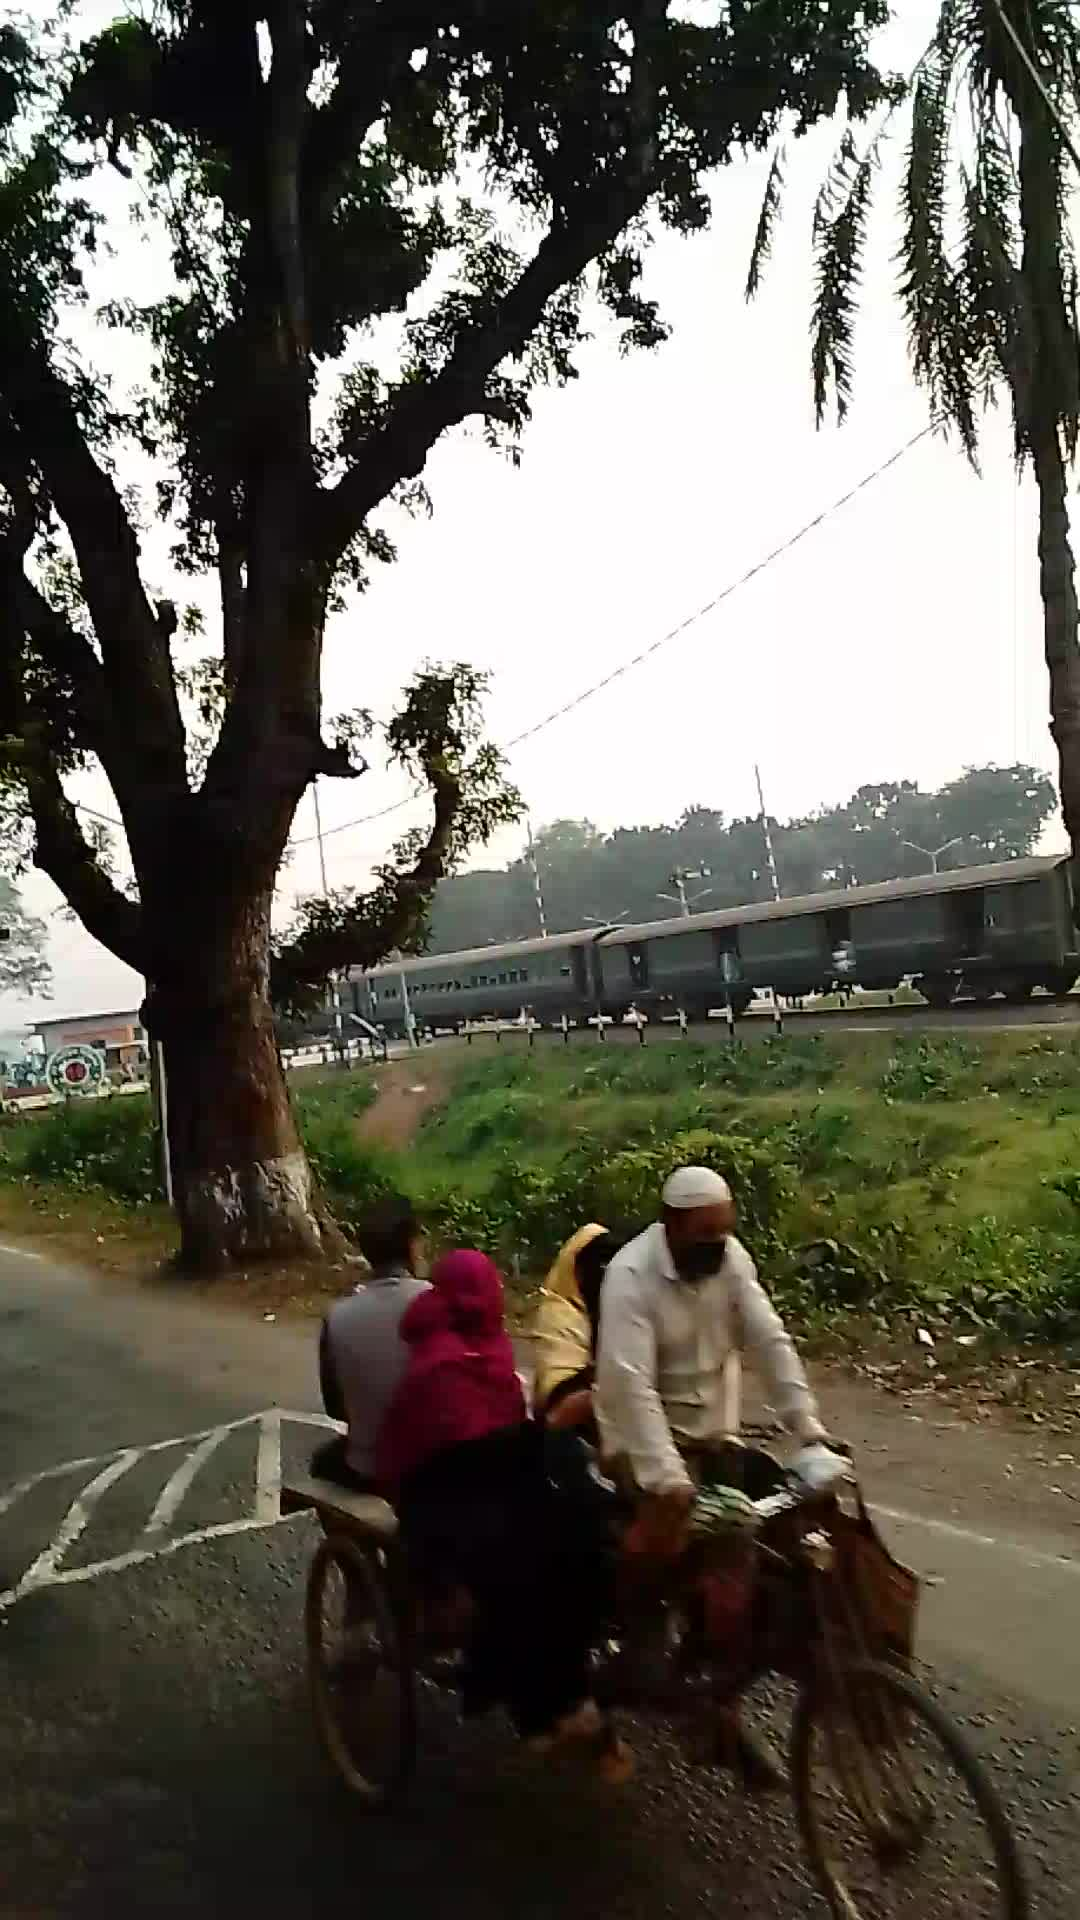 The scene of the train running in Jessore.